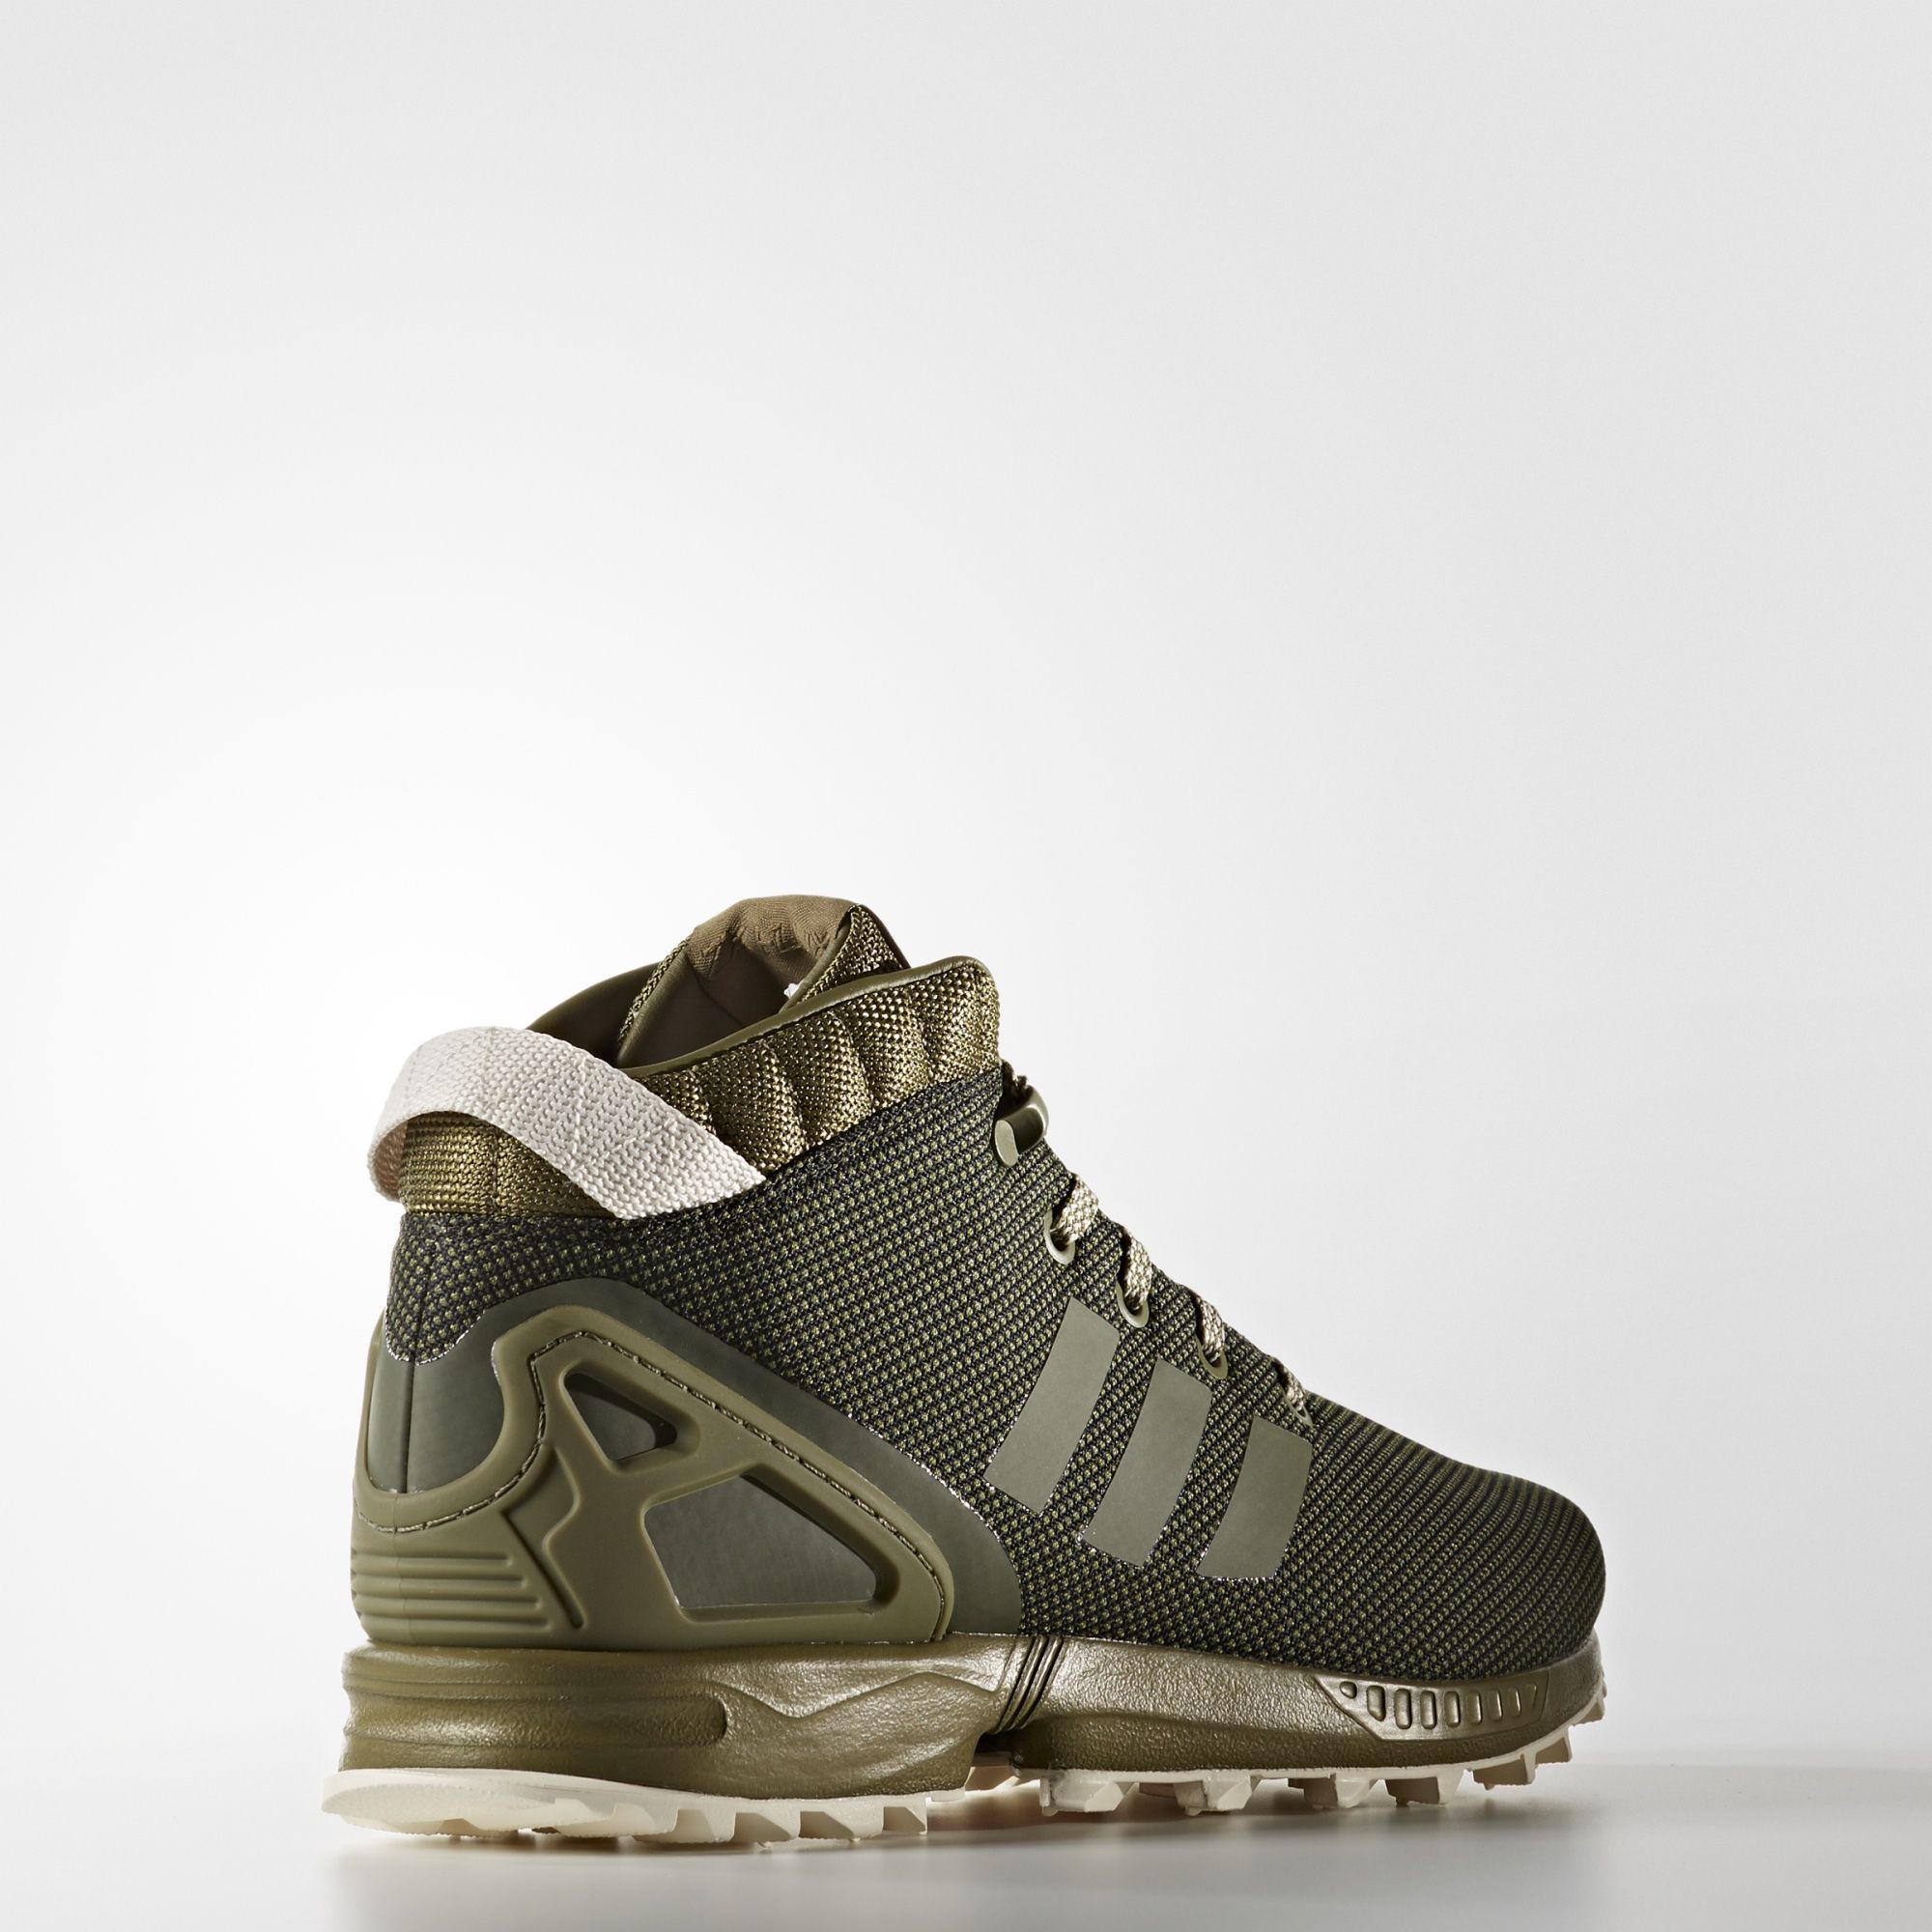 adidas men's zx flux beige